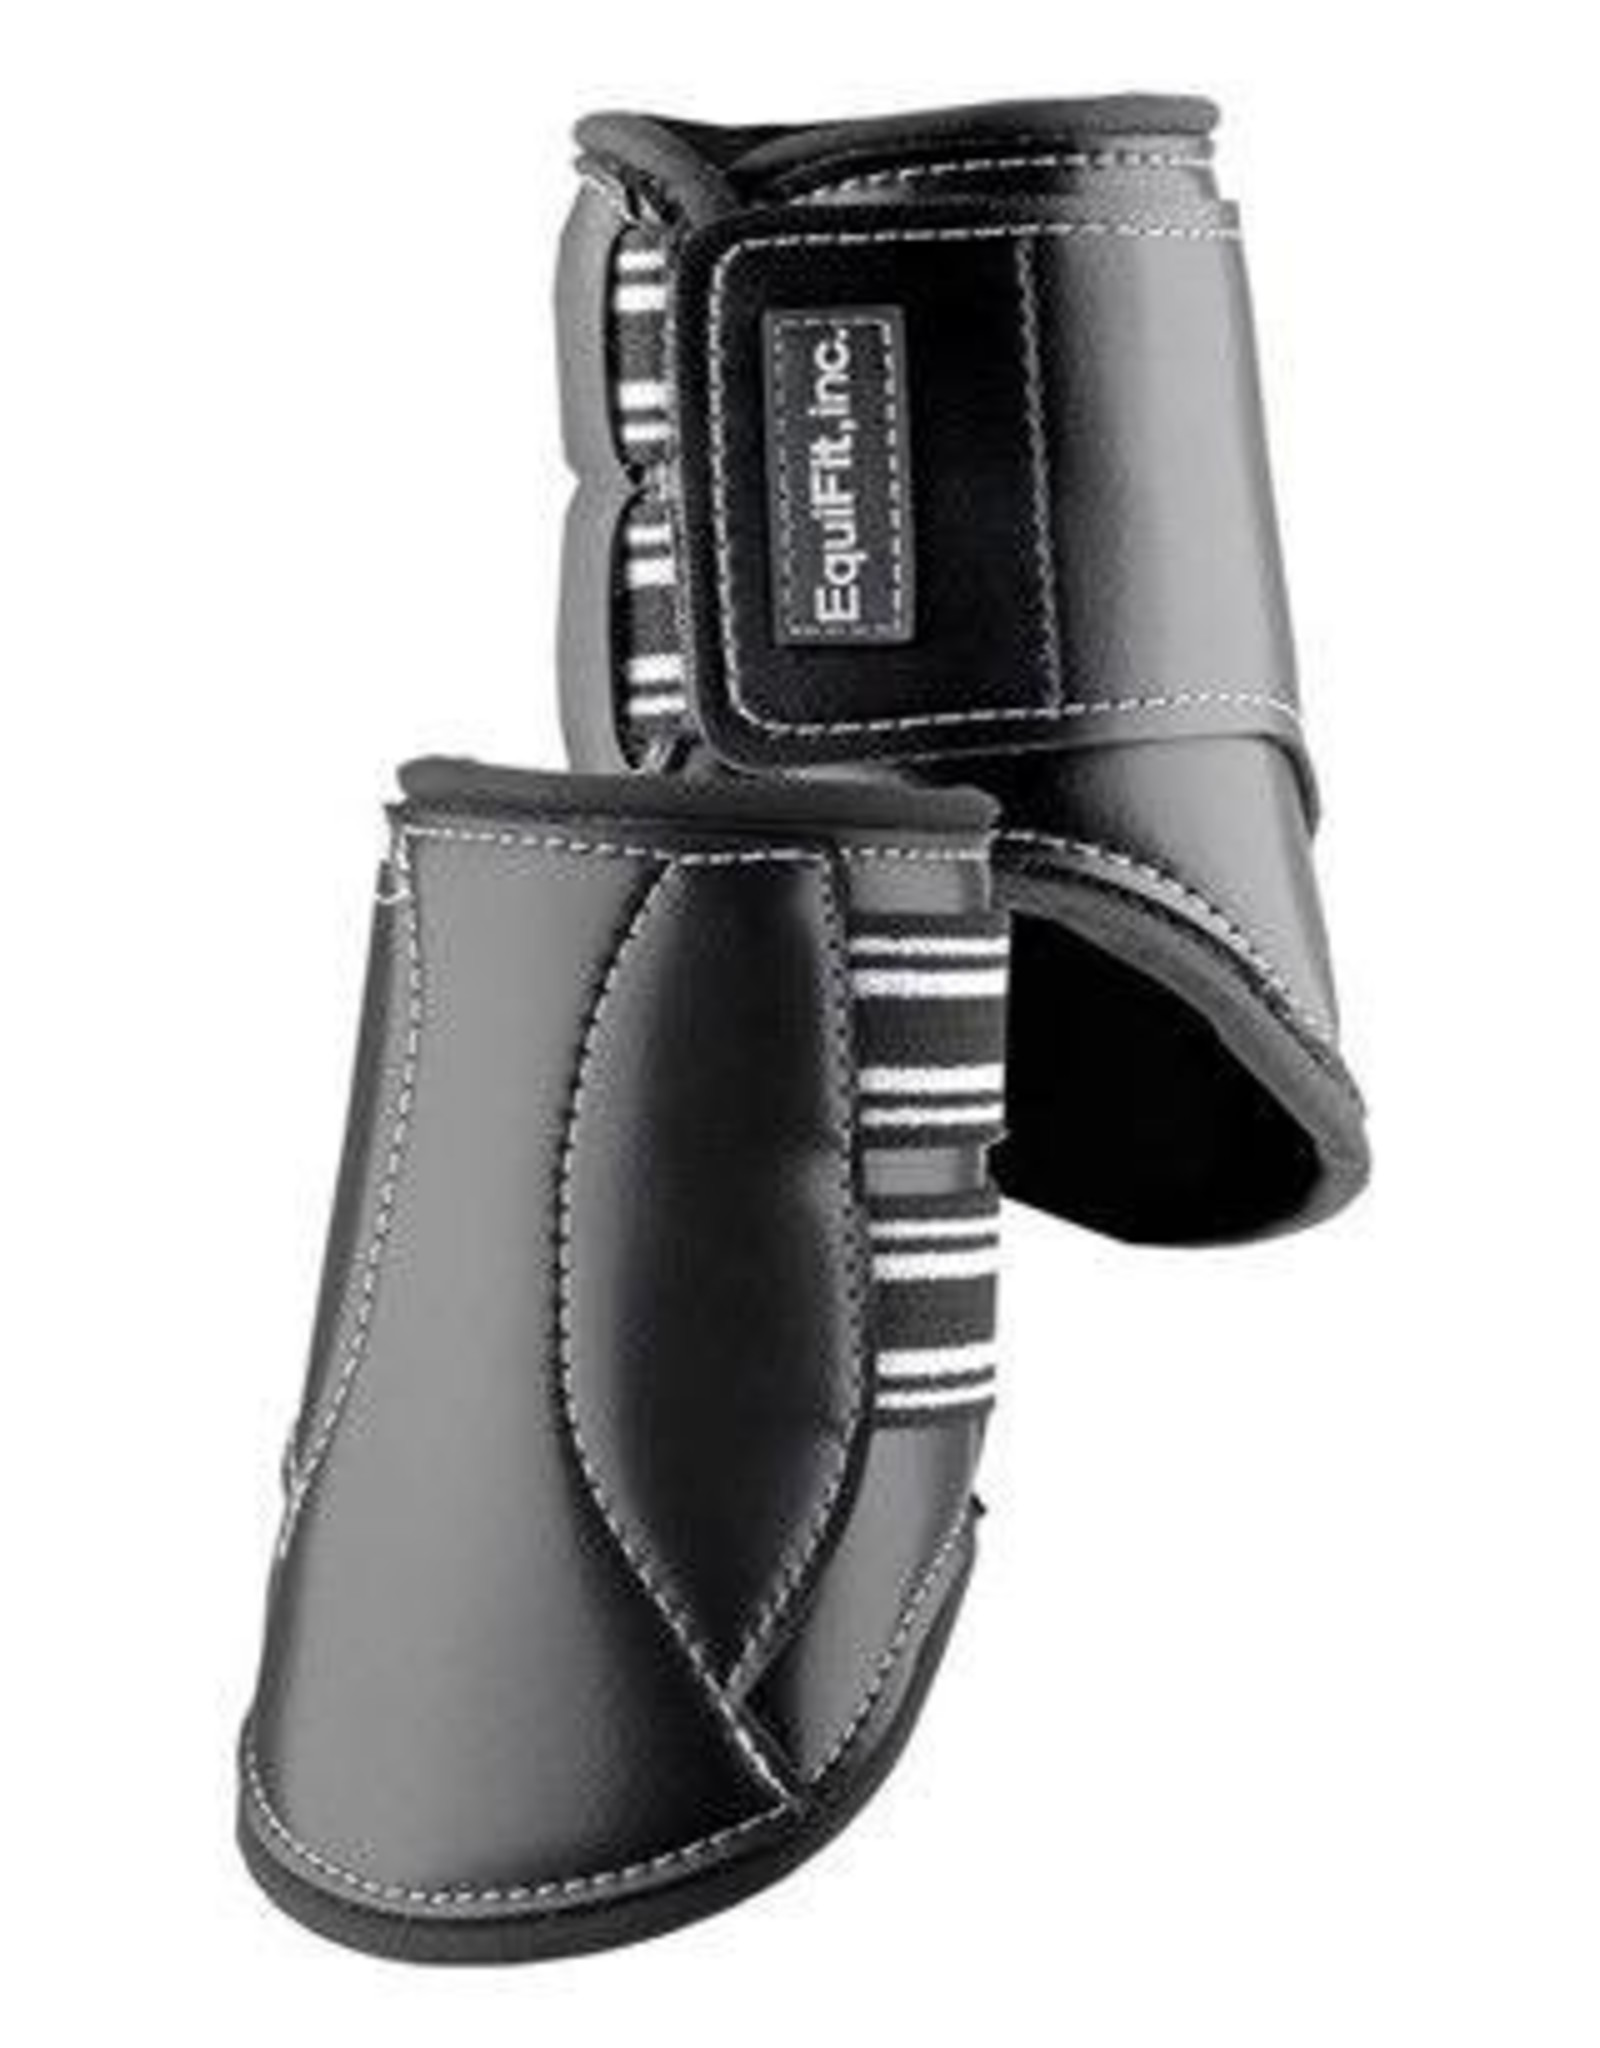 EquiFit MultiTeq Boot - Hind